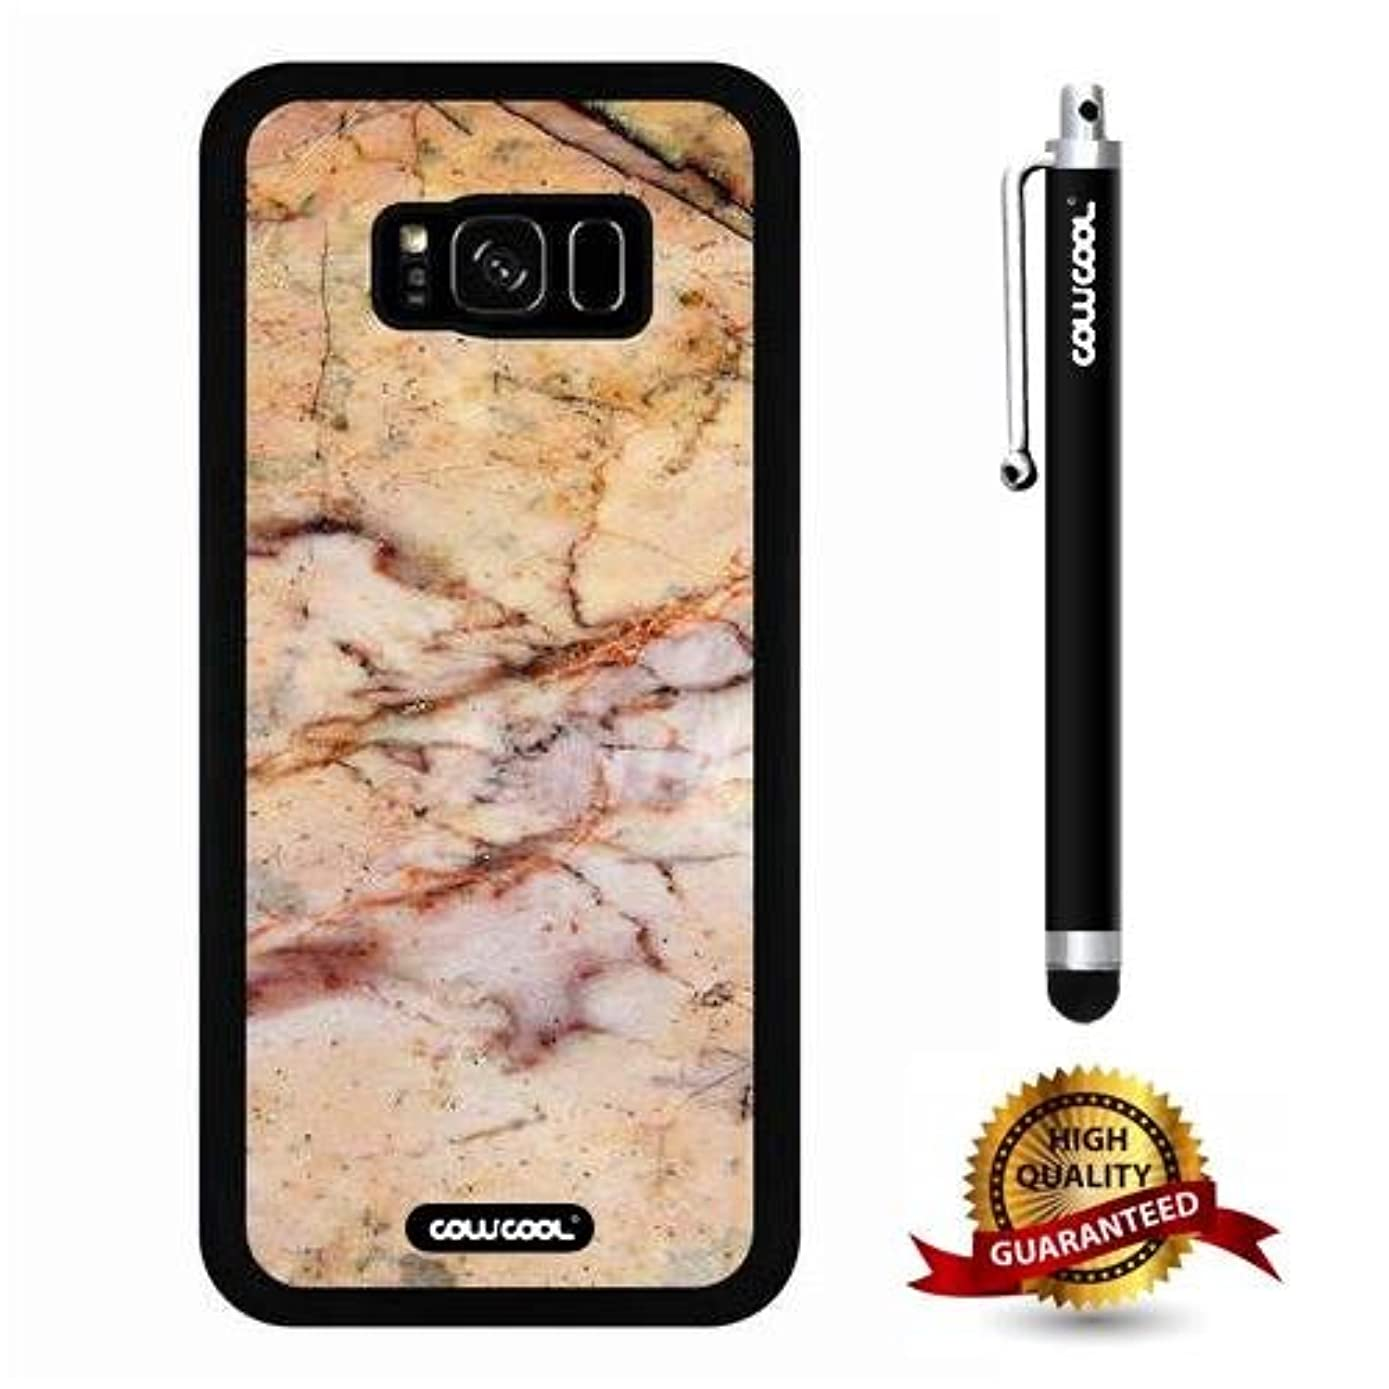 Galaxy S8 Plus Case, Marble Pattern Case, Cowcool Ultra Thin Soft Silicone Case for Samsung Galaxy S8 Plus - Slash The Times Marble Texture